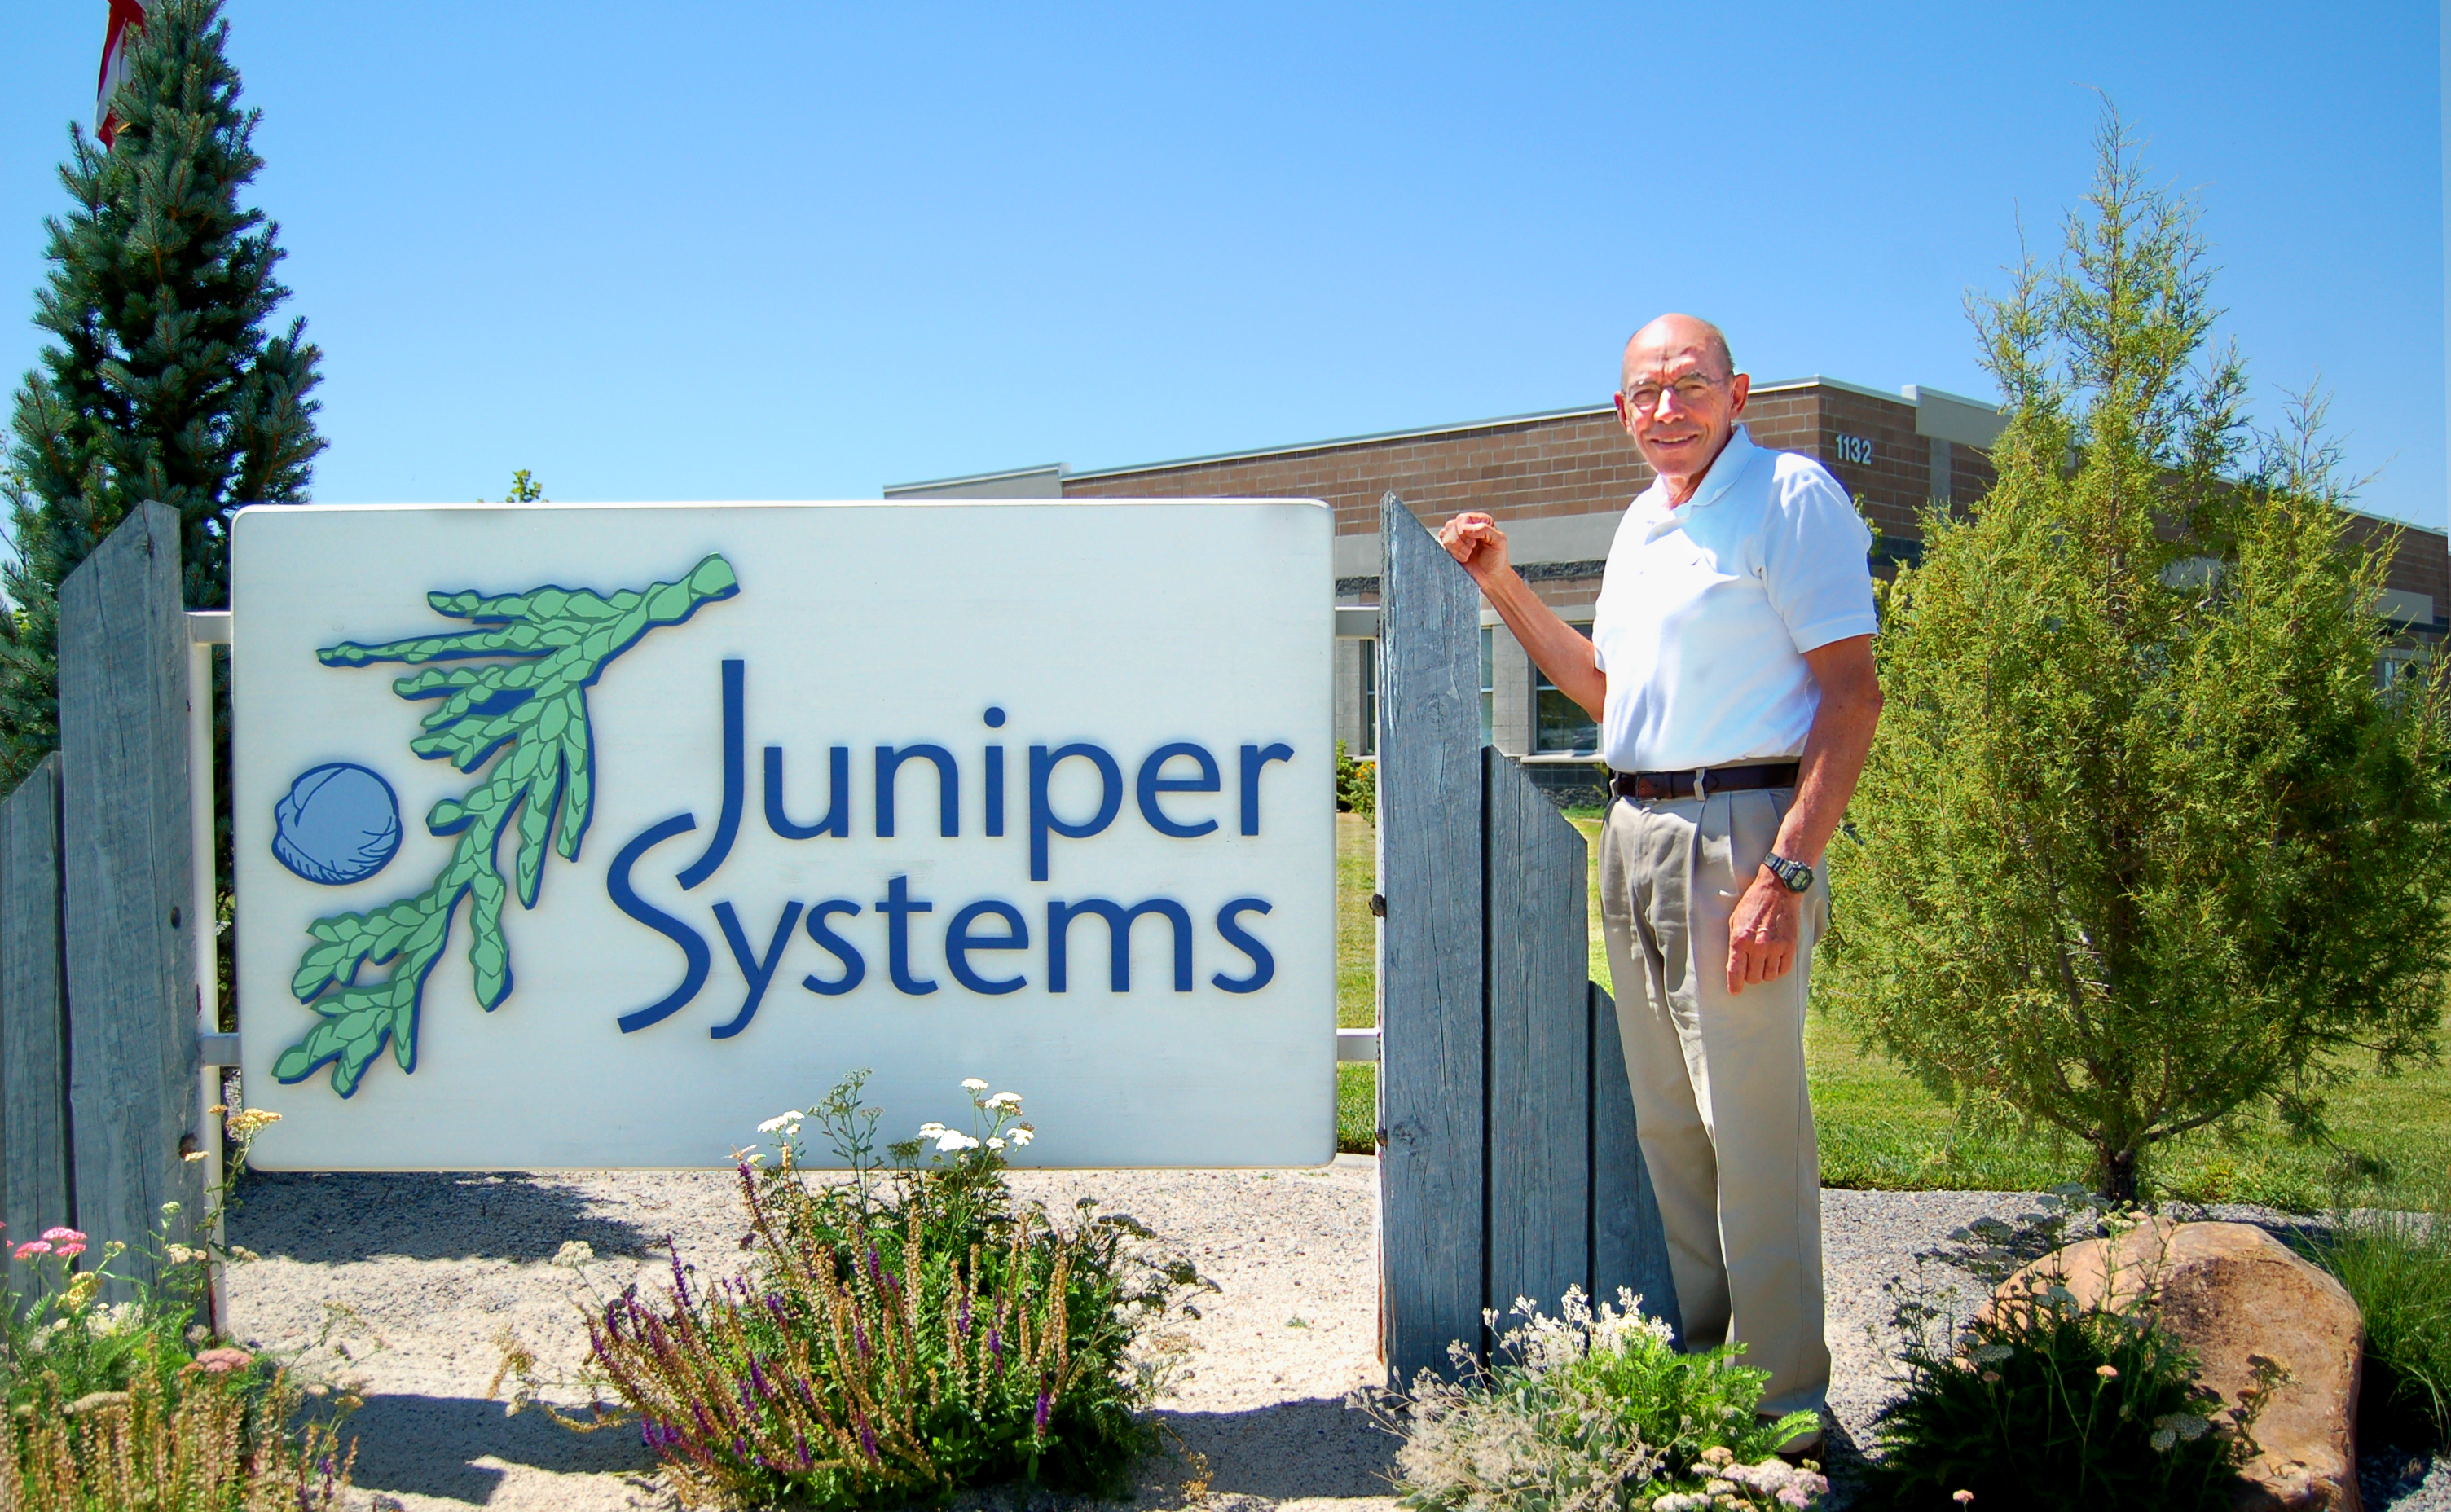 Juniper Systems Founder Ron Campbell Retires After 24 Years of Hard Work and Dedication